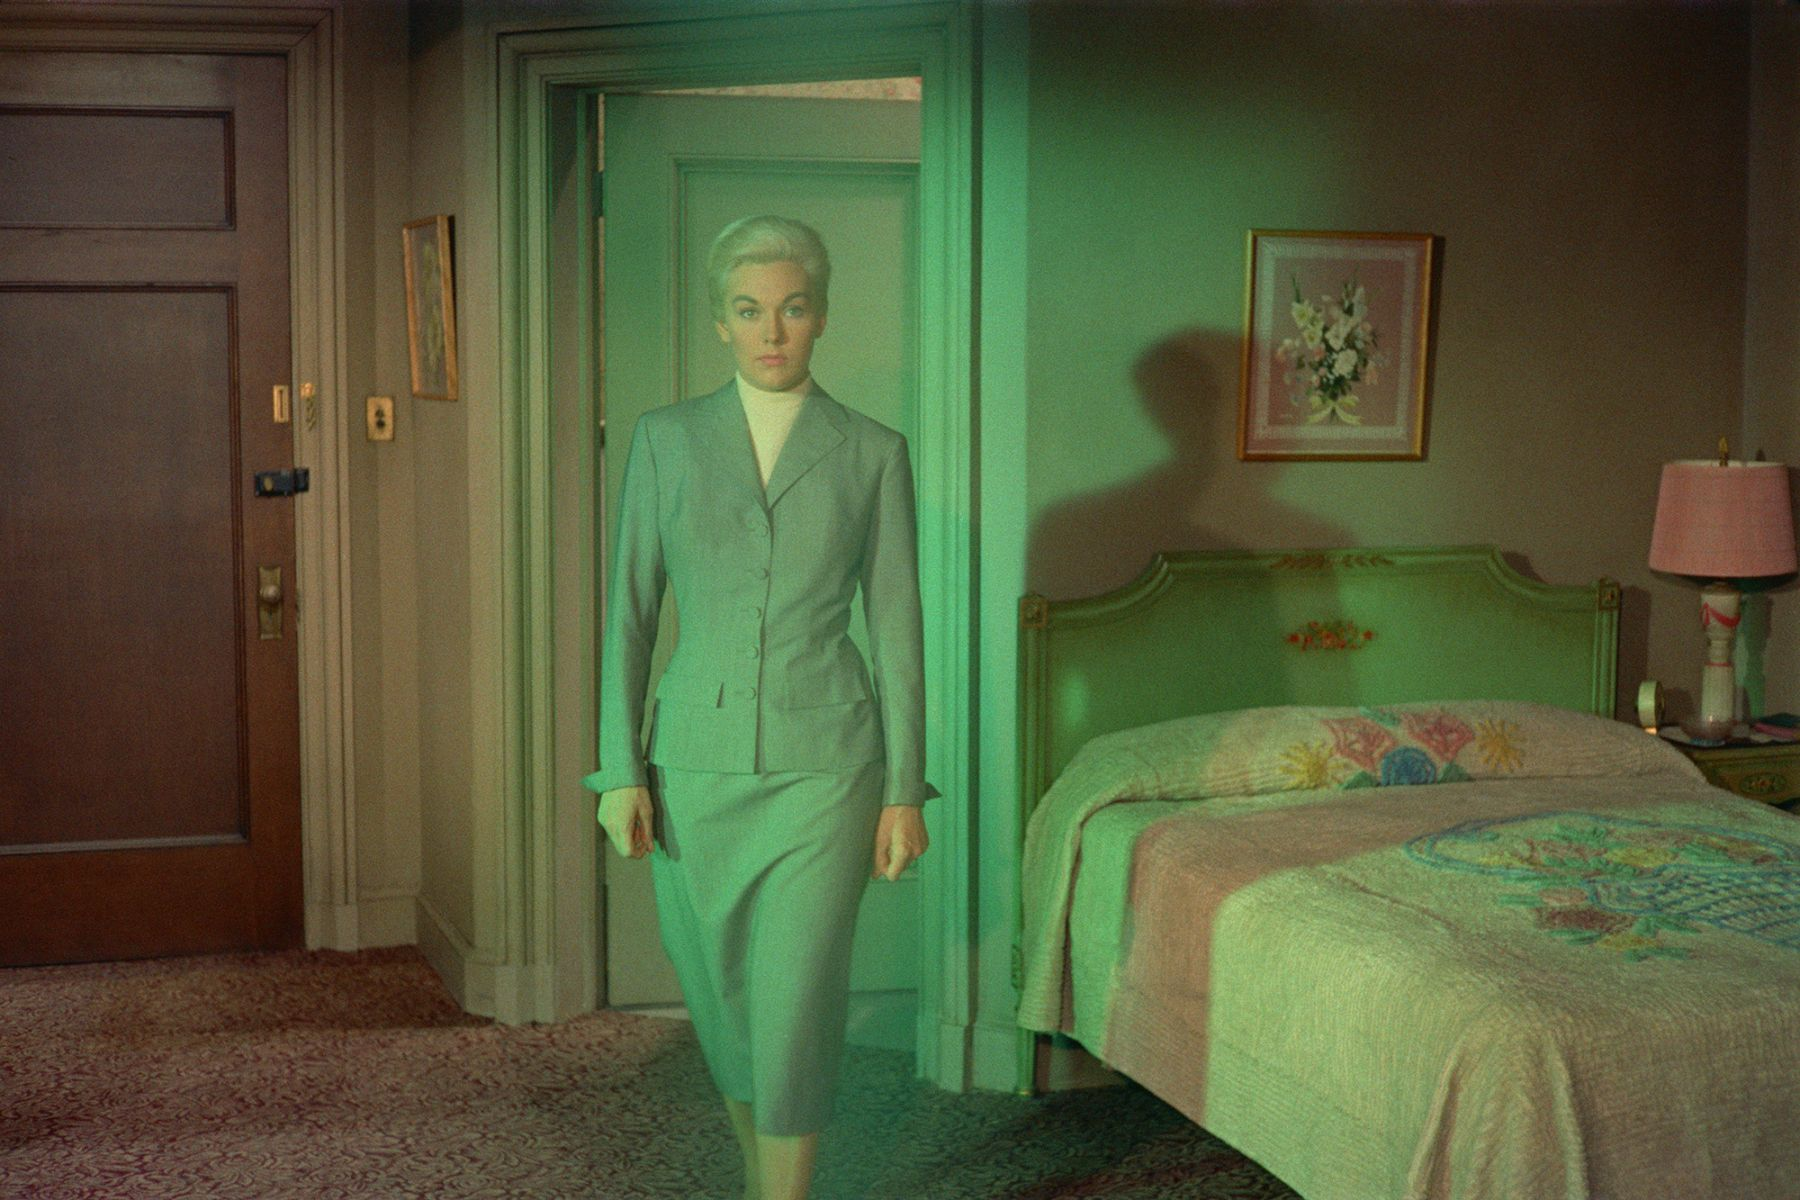 apparition of a woman in a skirt suit walks through a bedroom